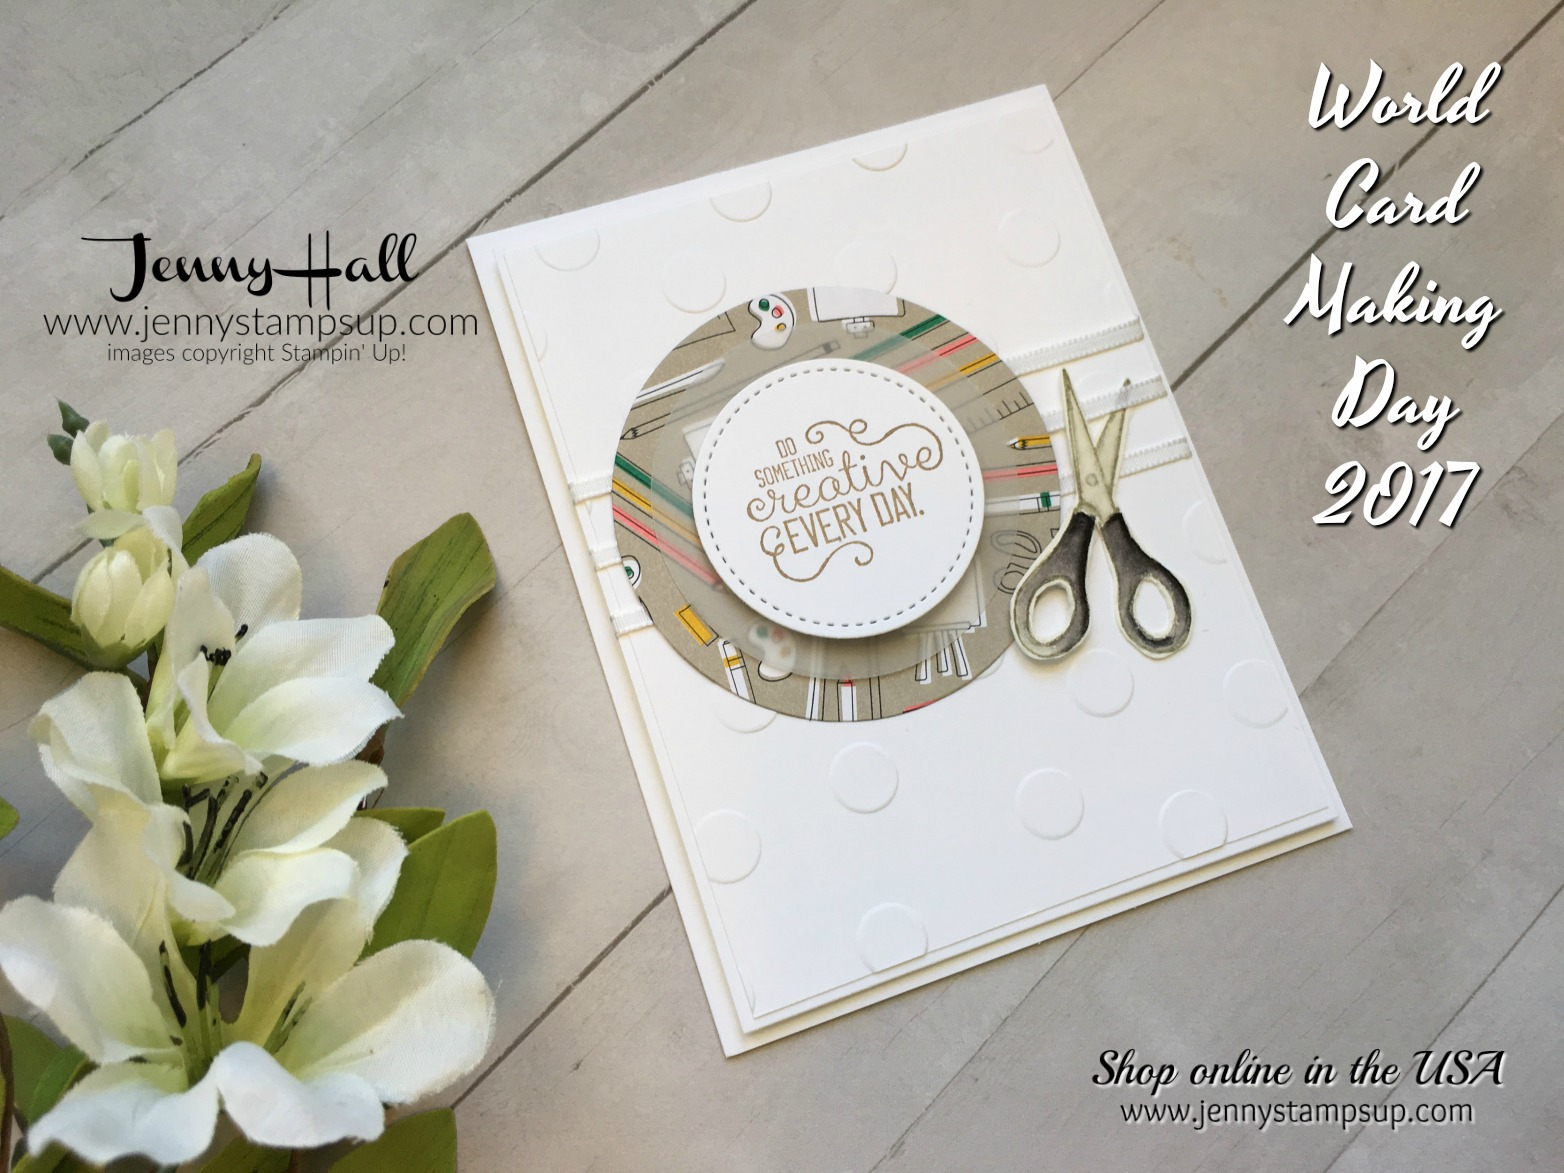 world card making day blog hop by Jenny Hall at www.jennystampsup.com